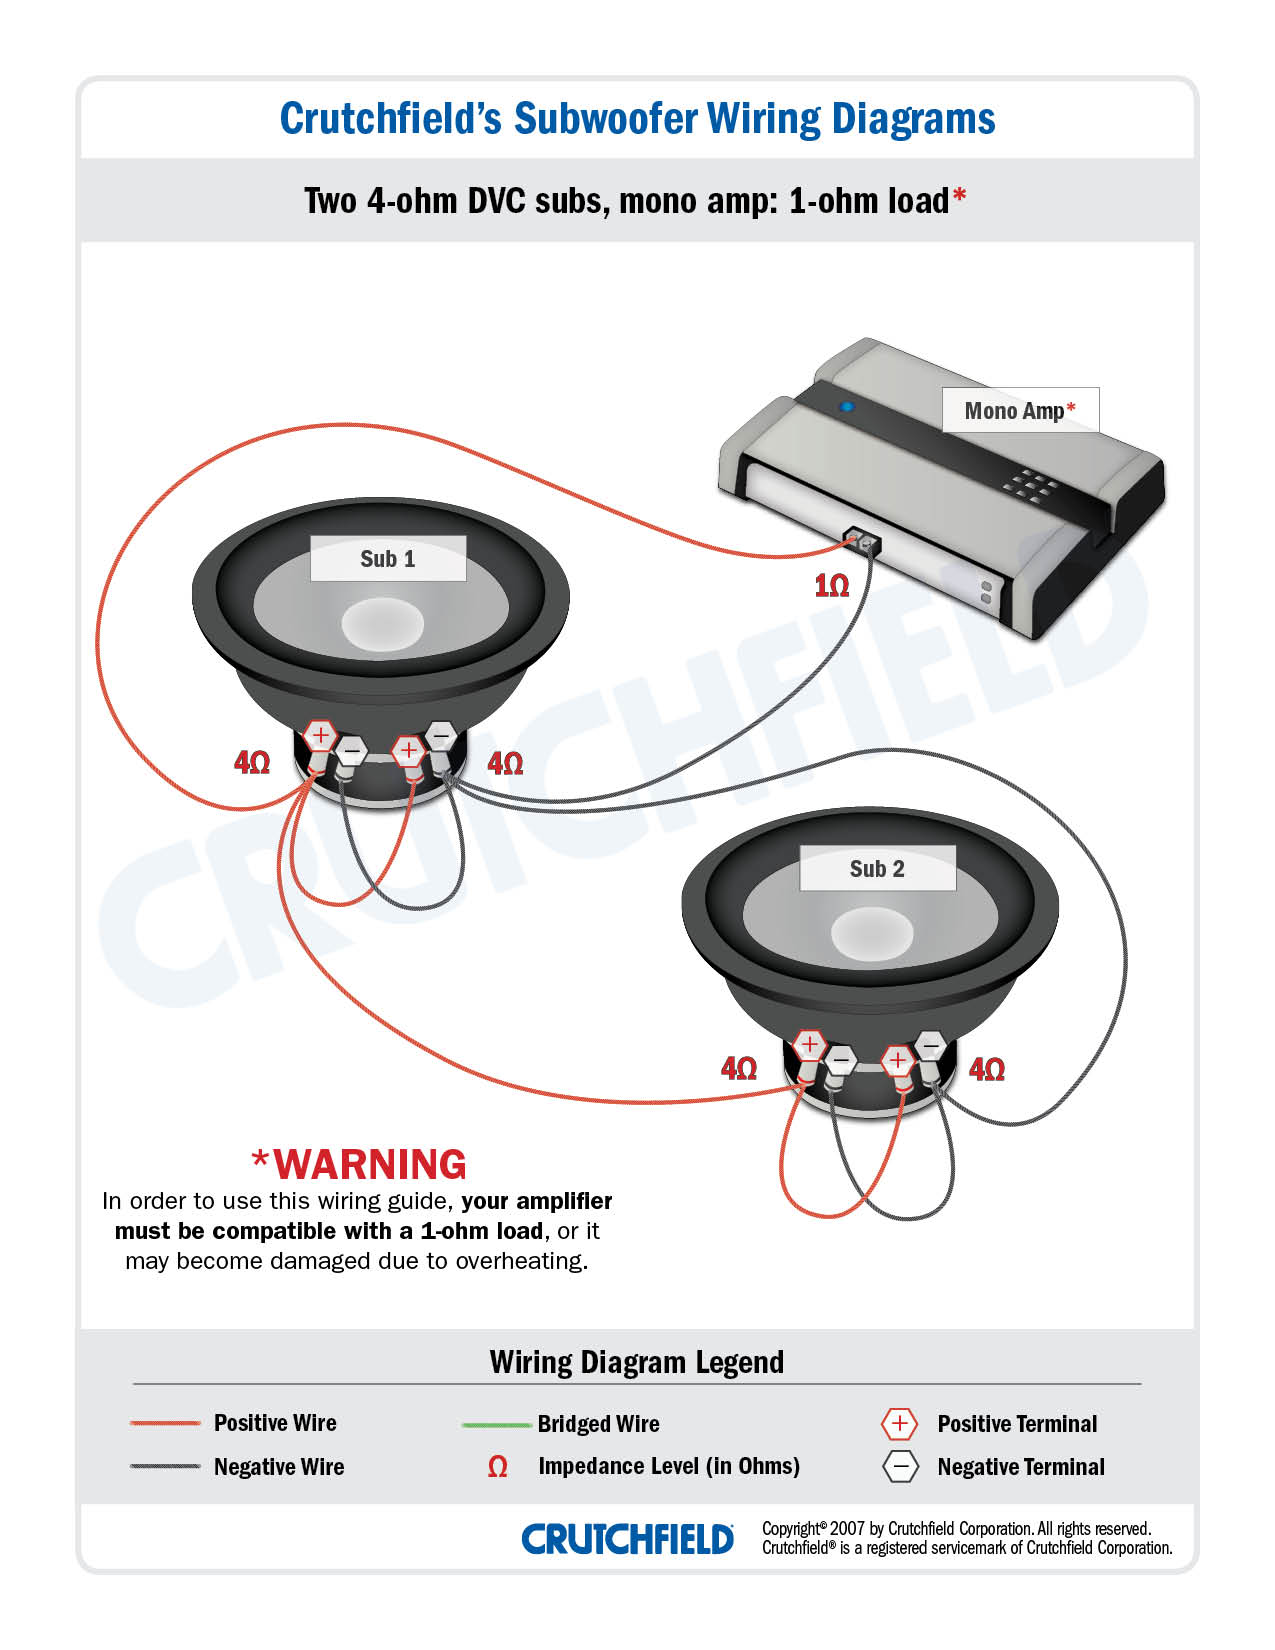 Amplifier wiring diagrams how to add an amplifier to your car audio greg two dvc 4 ohm subs can only get wired together to form a cheapraybanclubmaster Choice Image